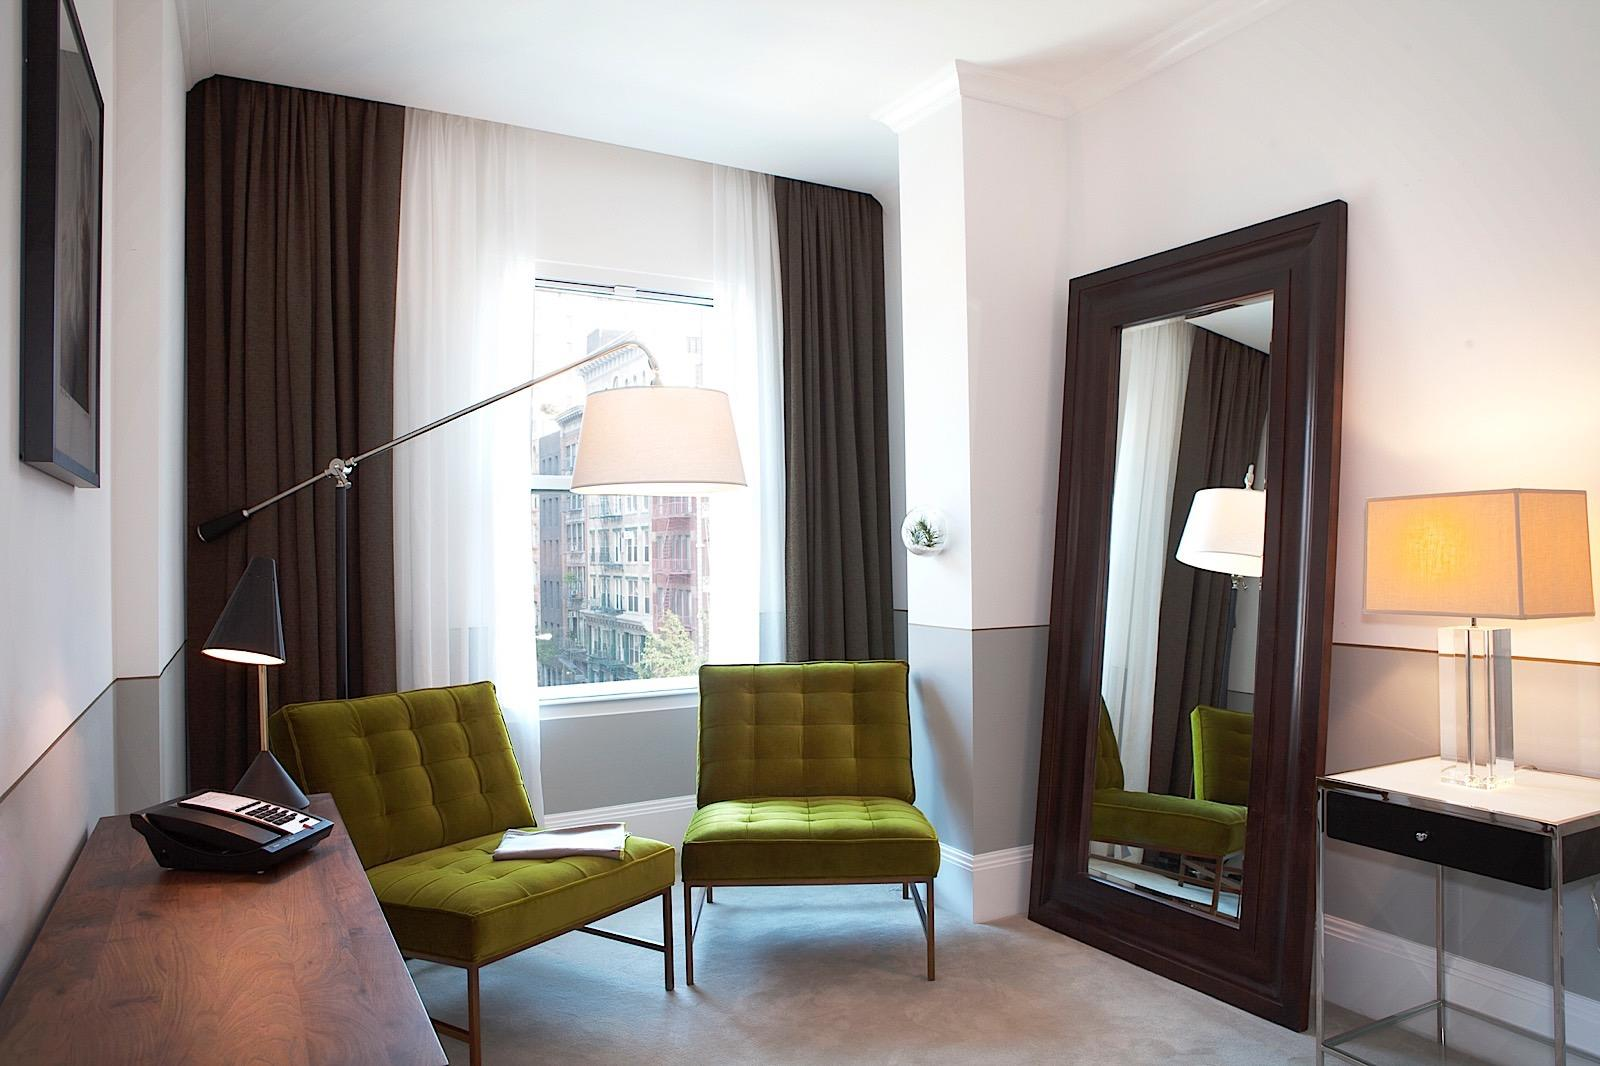 Junior Suite sitting area with large mirror and window